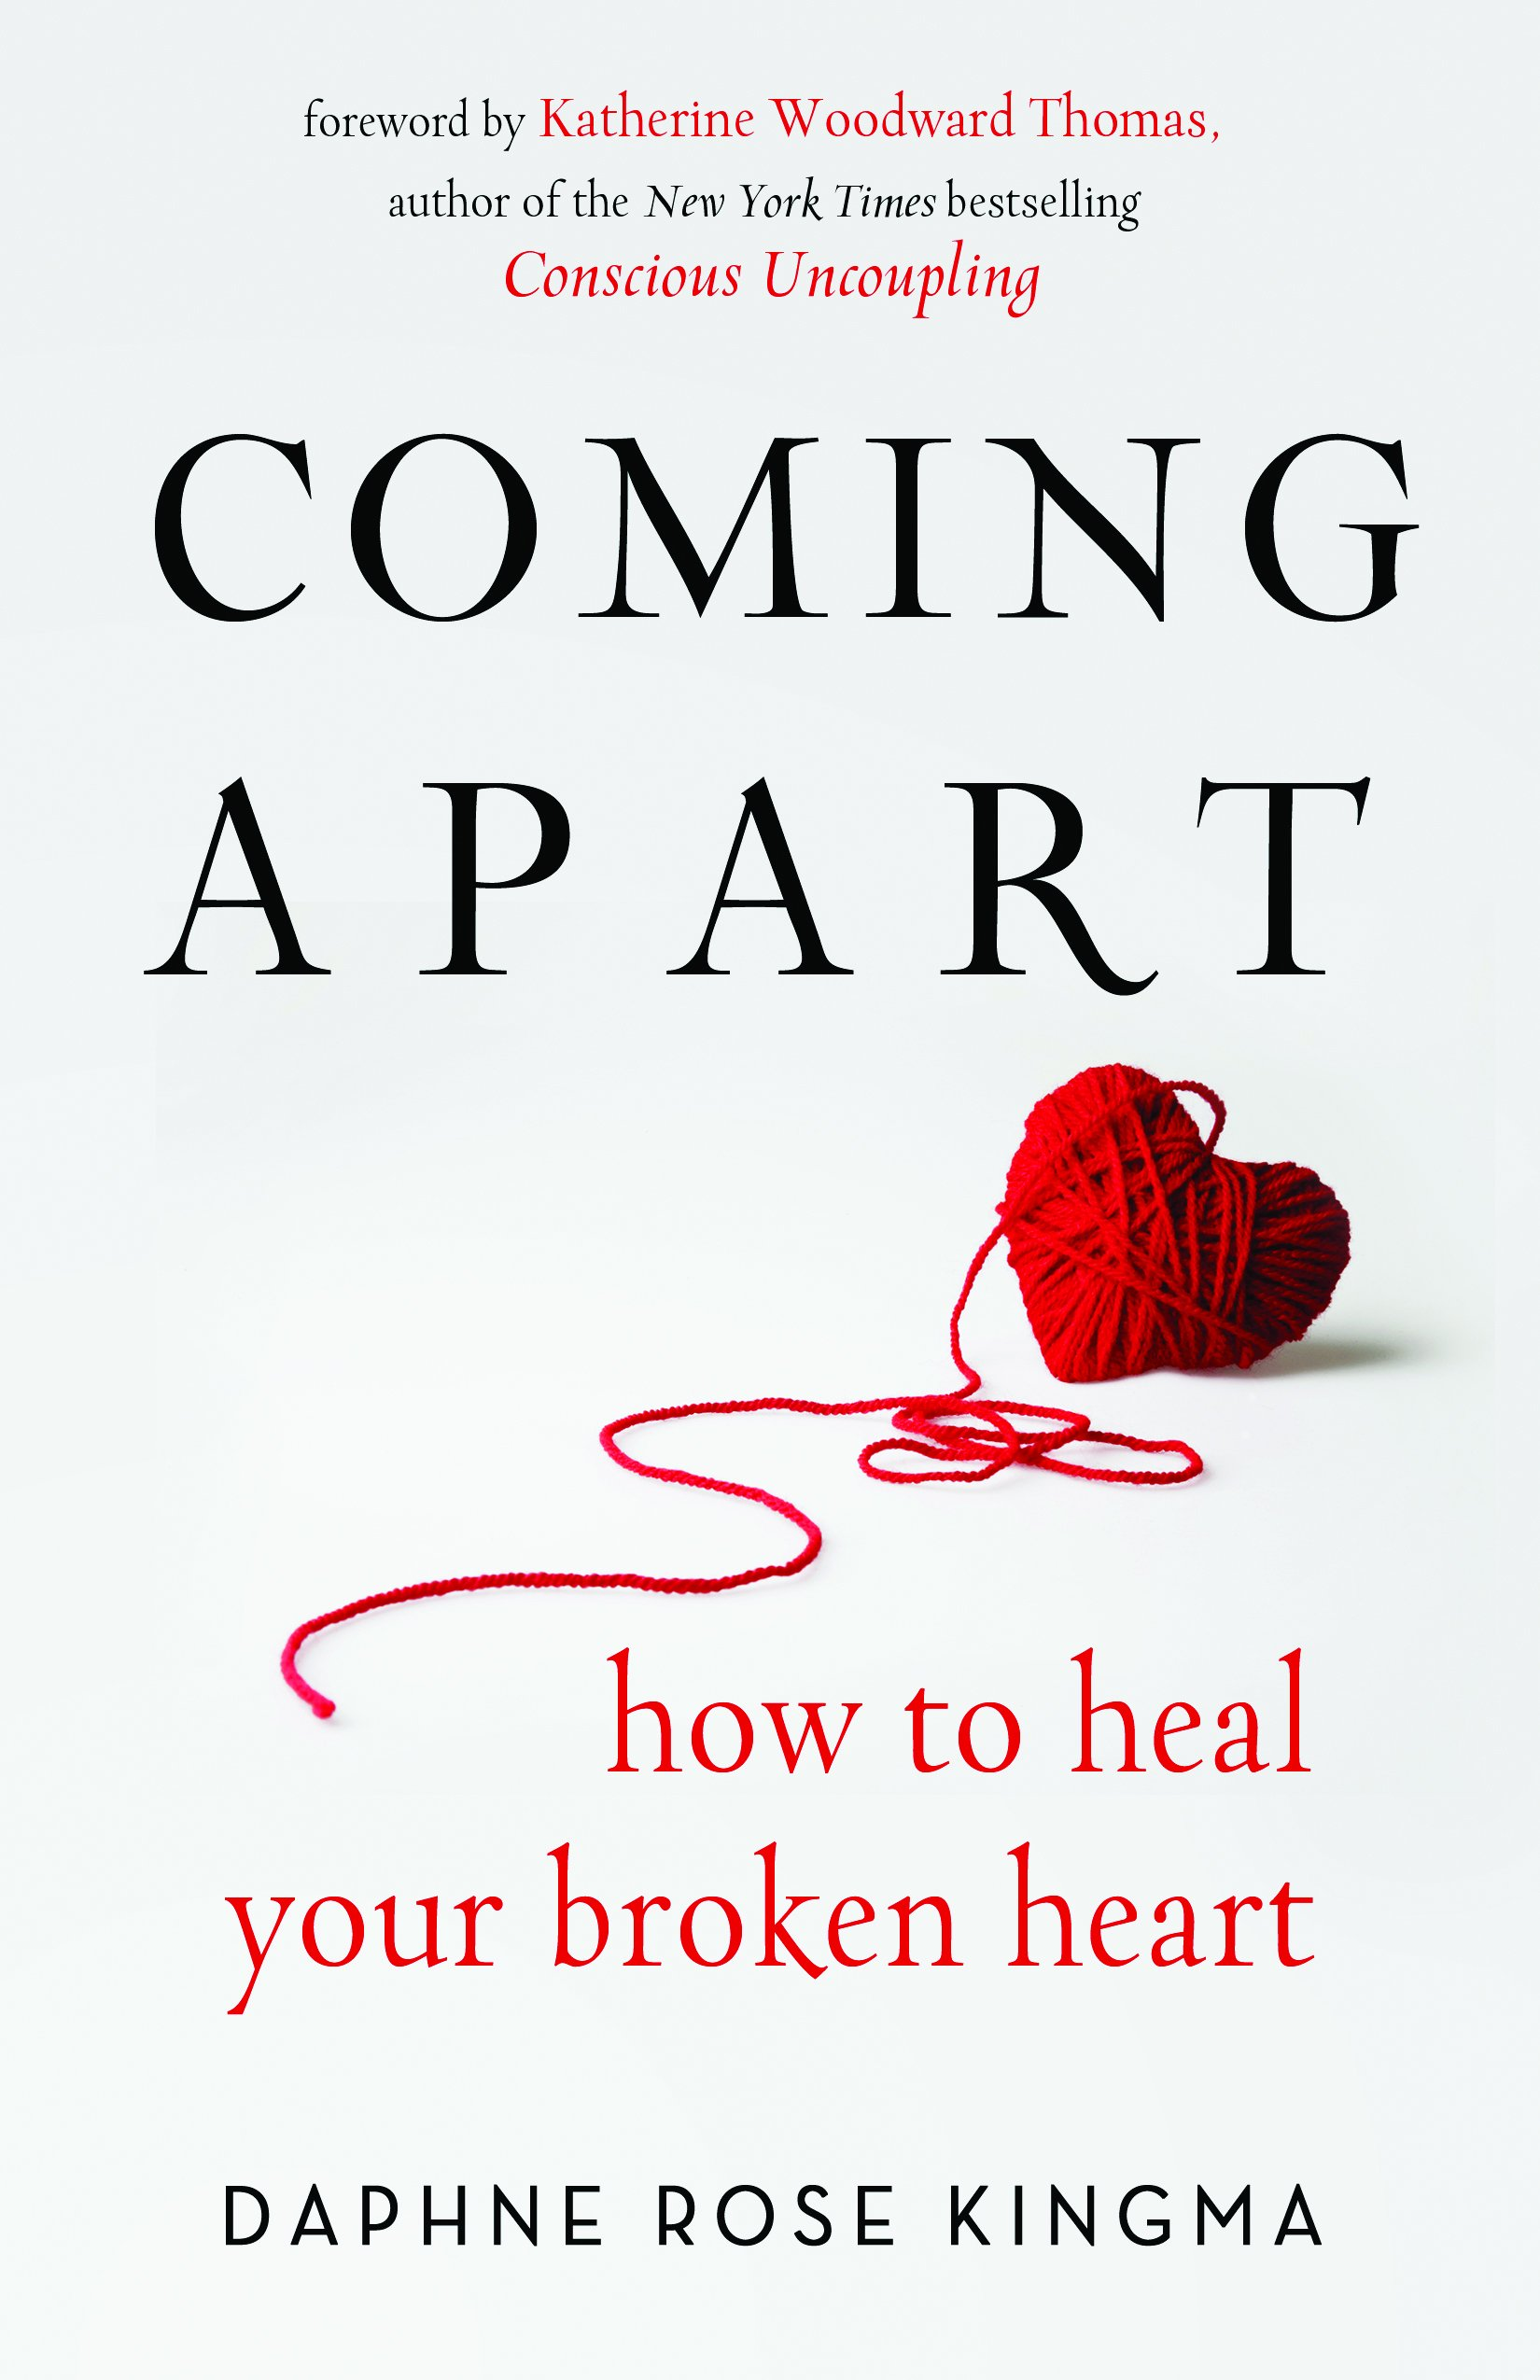 Coming Apart: How to Heal Your Broken Heart: Daphne Rose